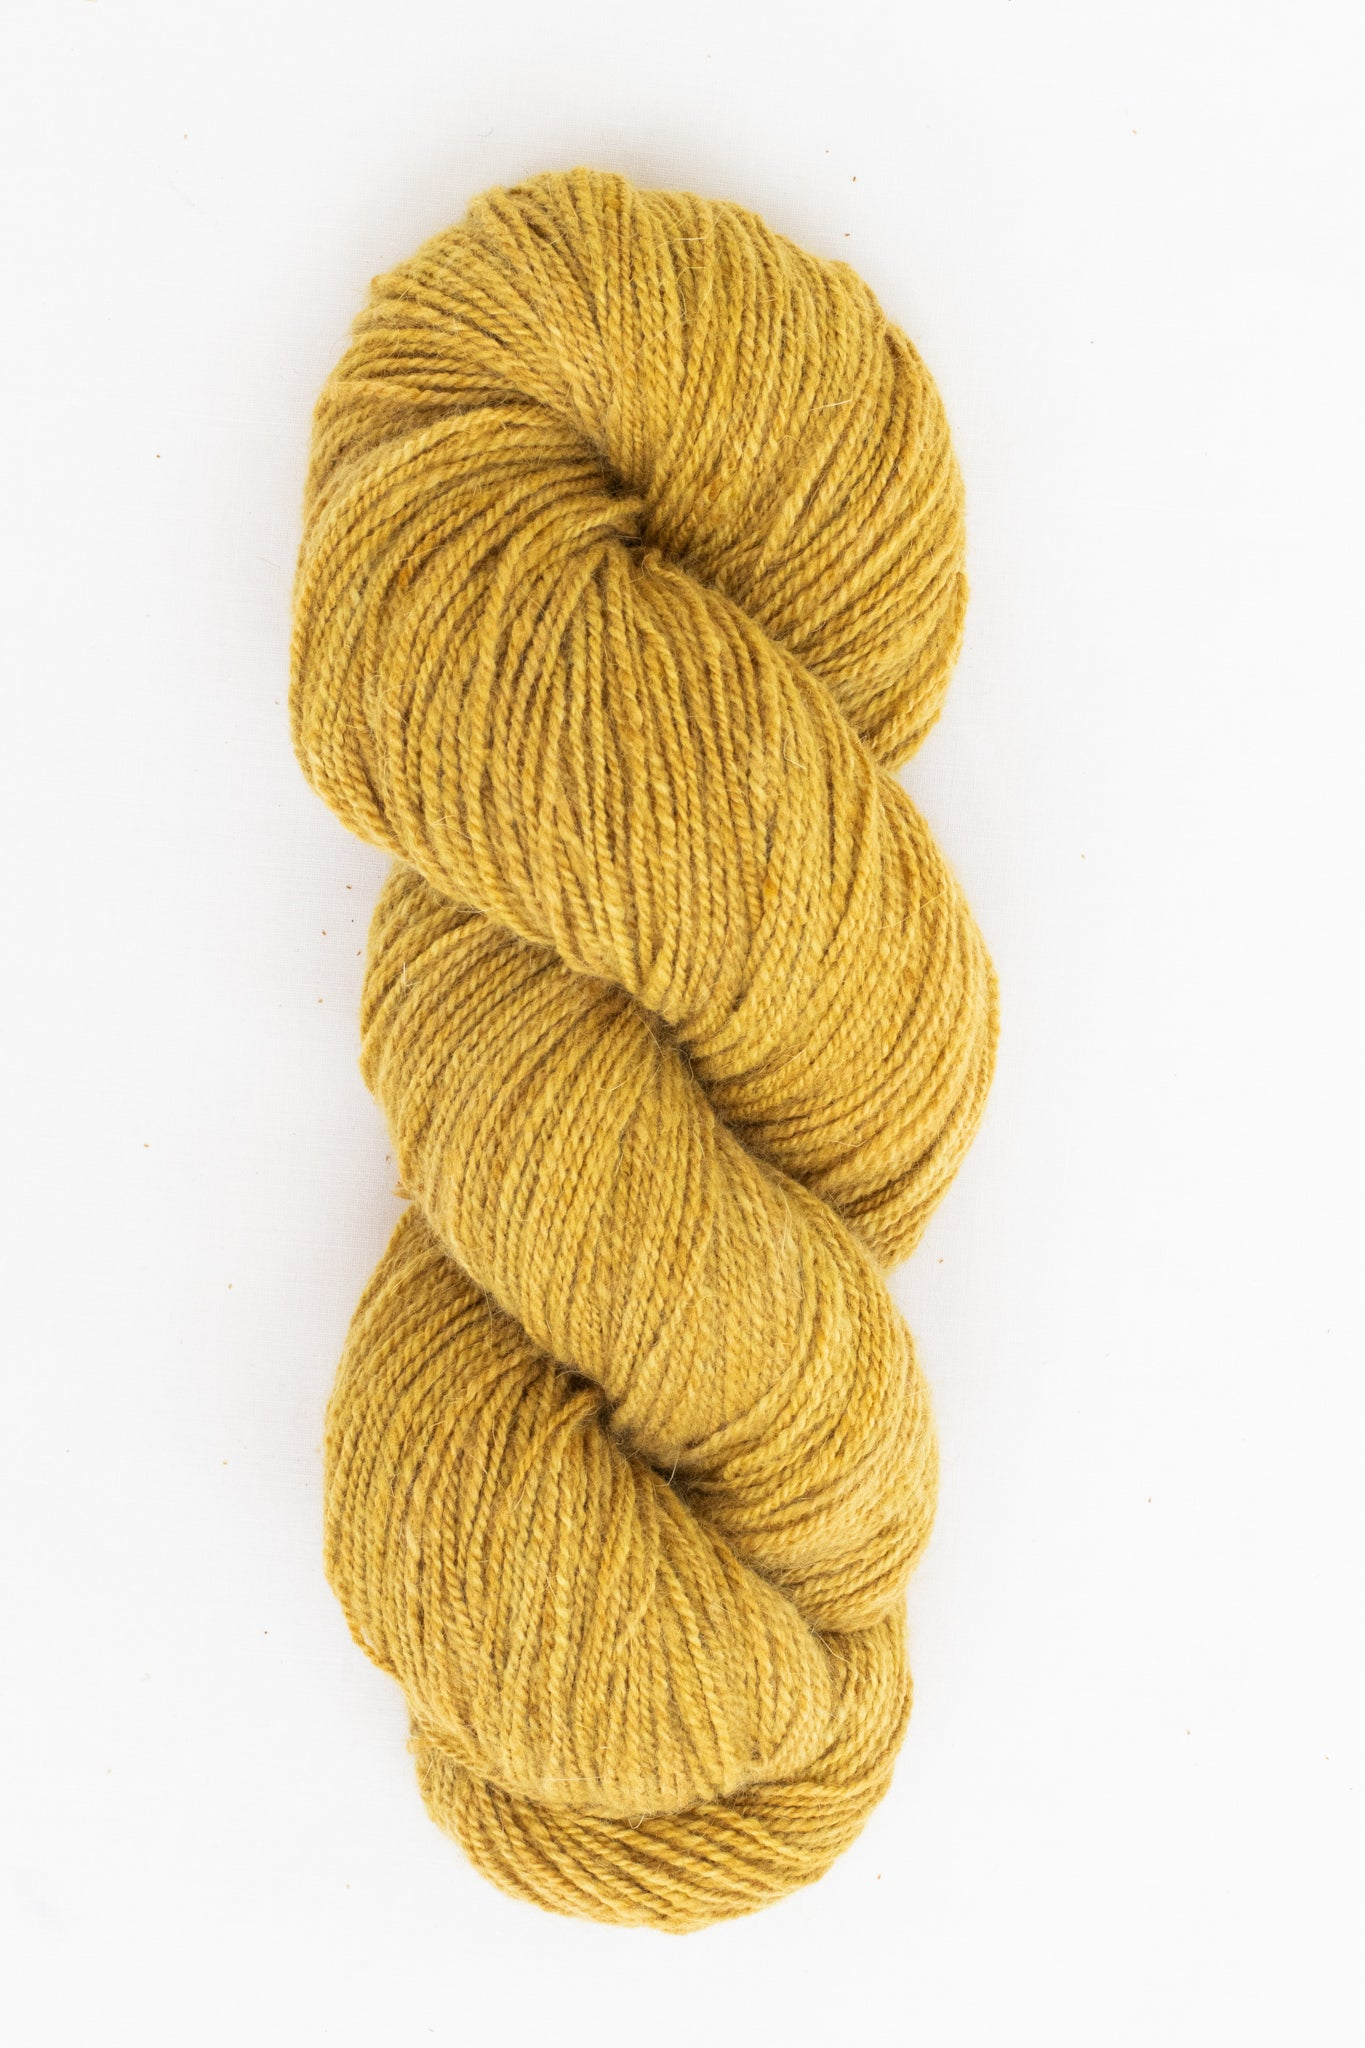 Organic Angora and Merino Blend, Onionskin